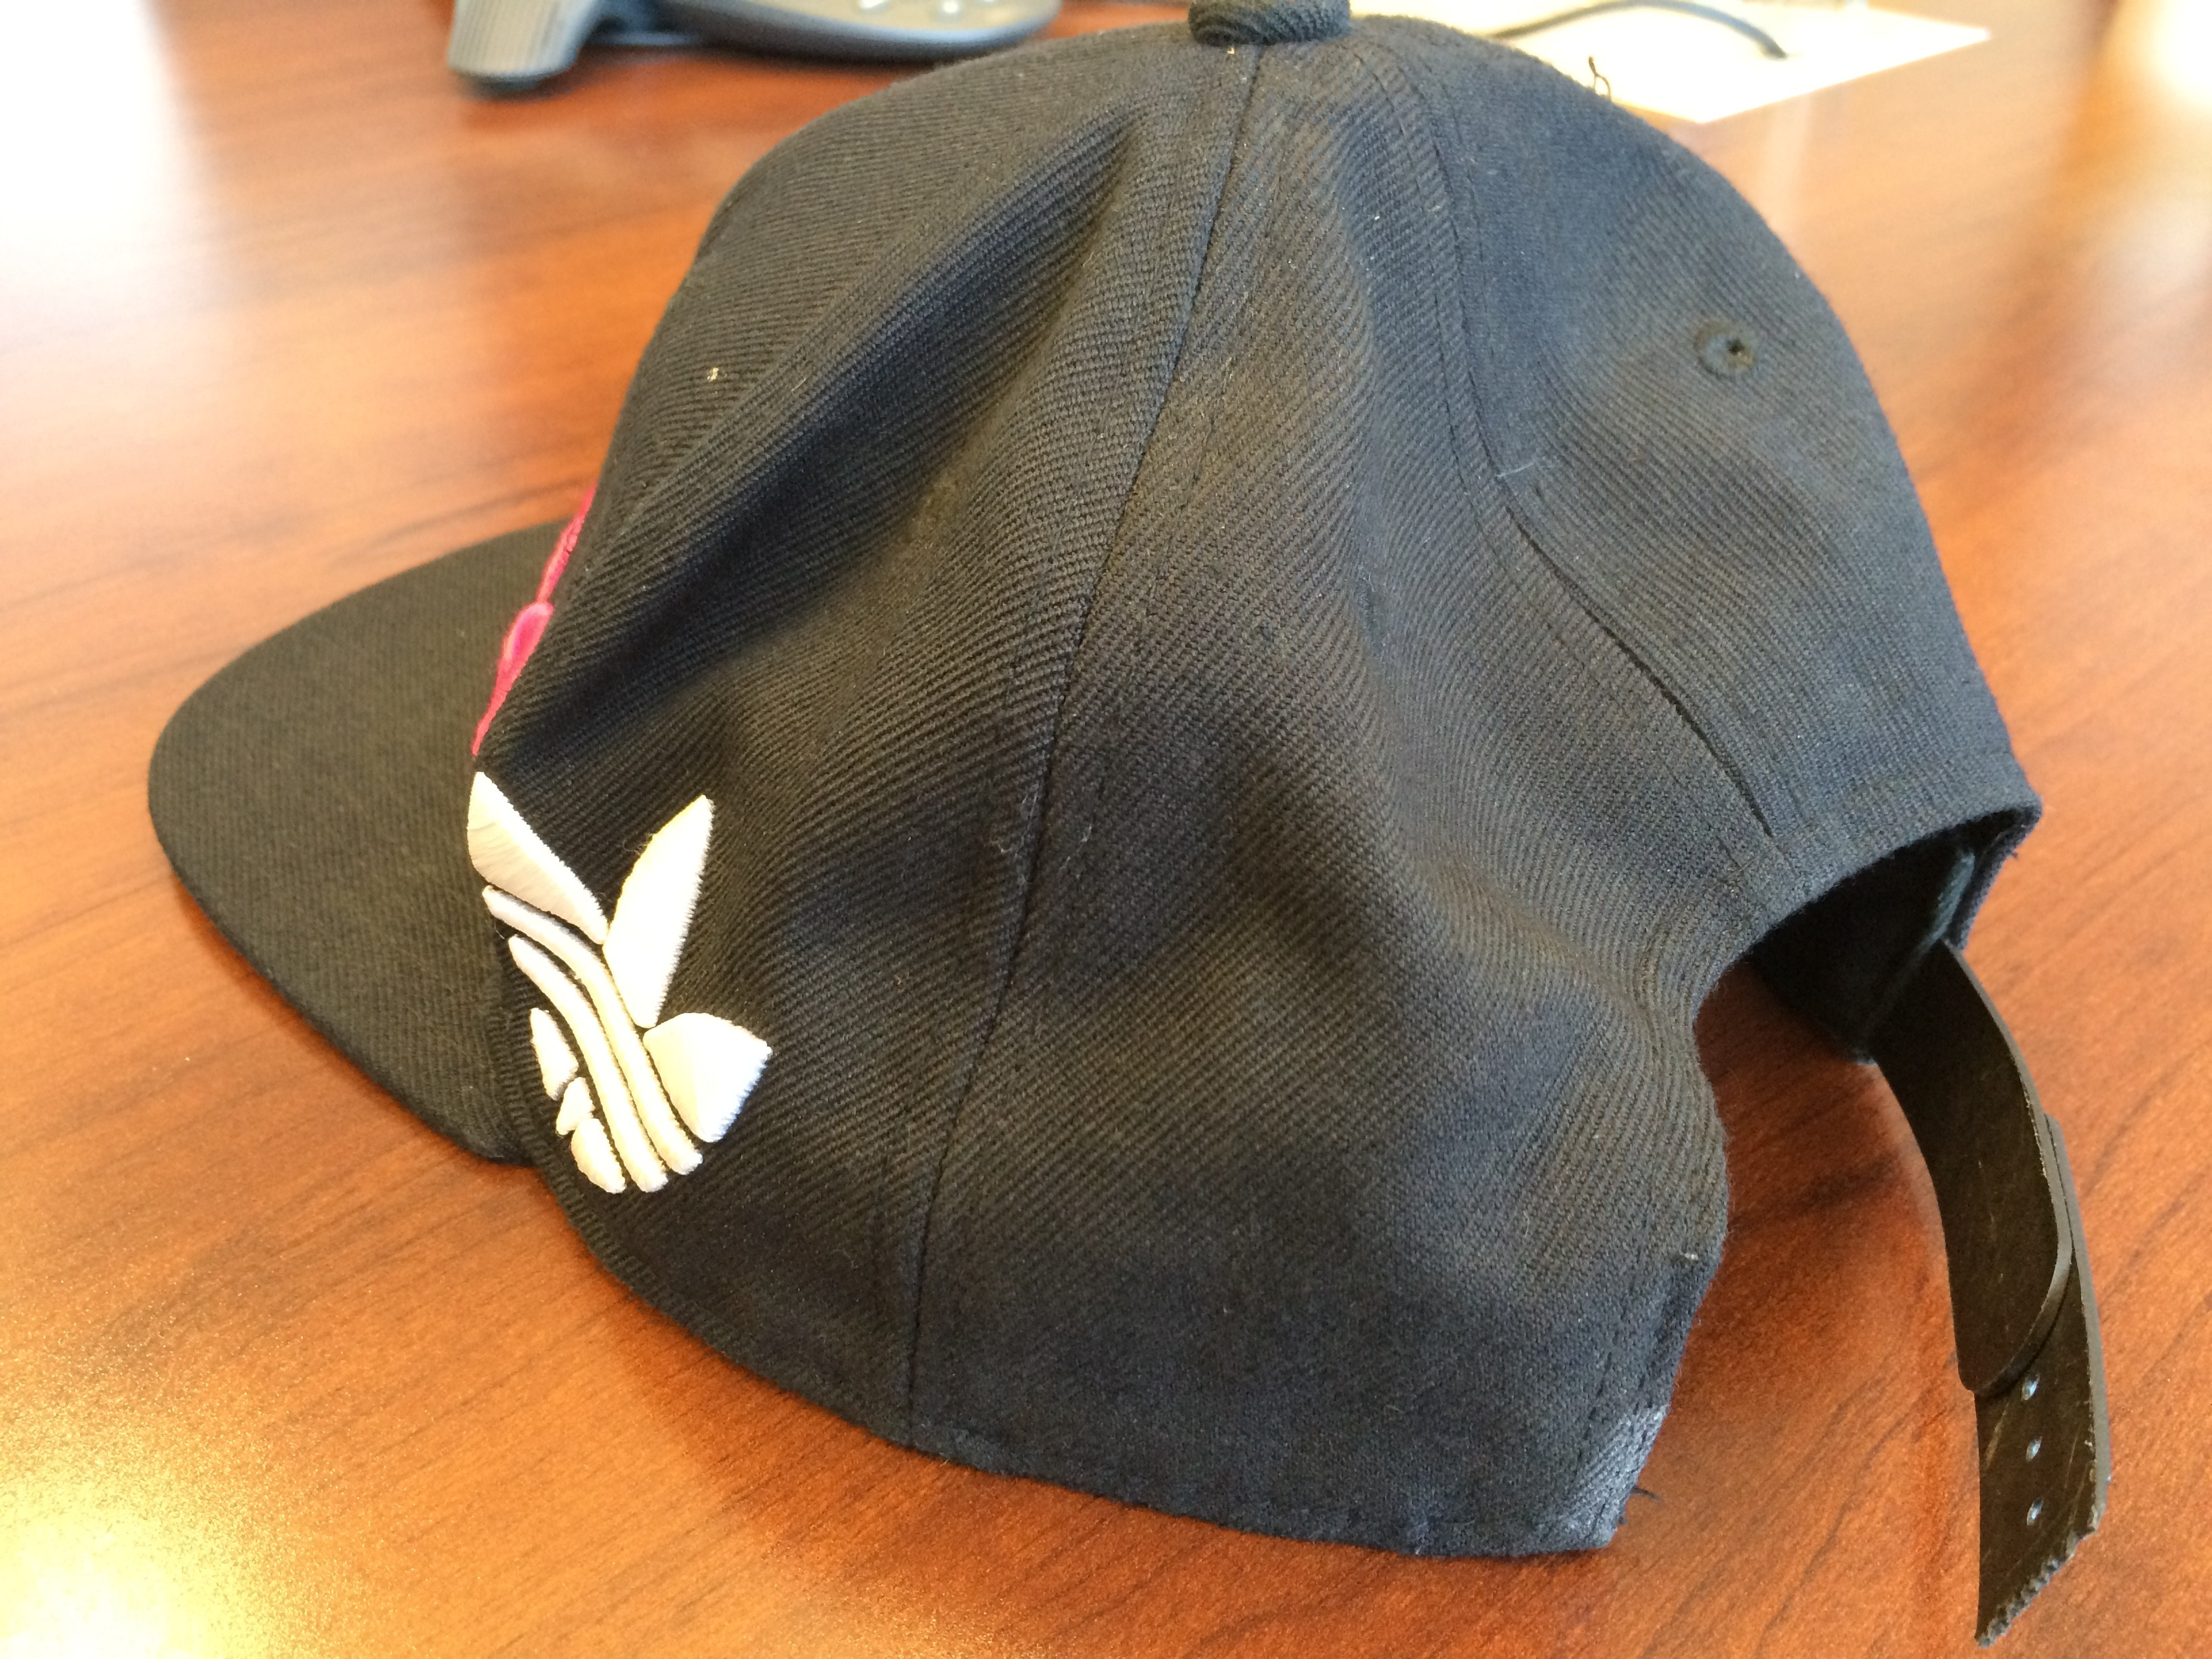 bfb5463d2fb click to enlarge Ryan Holyk was wearing this hat the night he was hit by  Deputy Joe Bodman s SUV